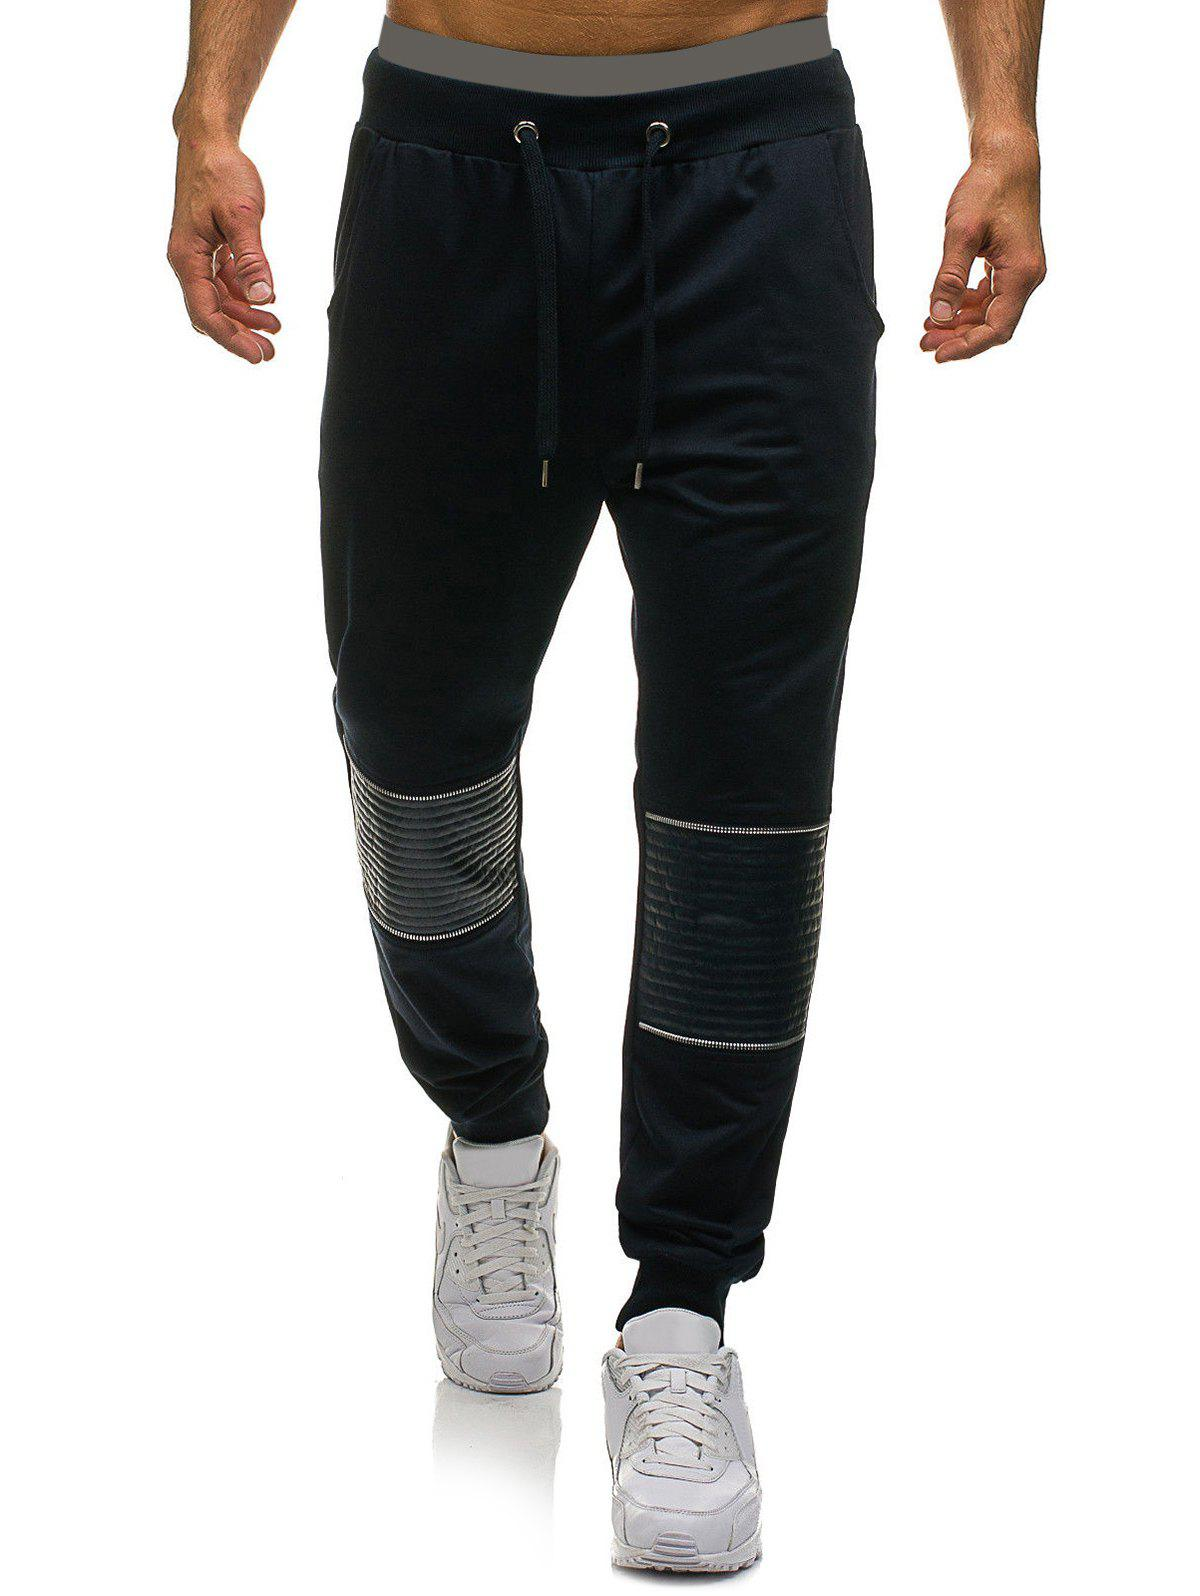 Buy Patchwork Casual Drawstring Jogger Pants